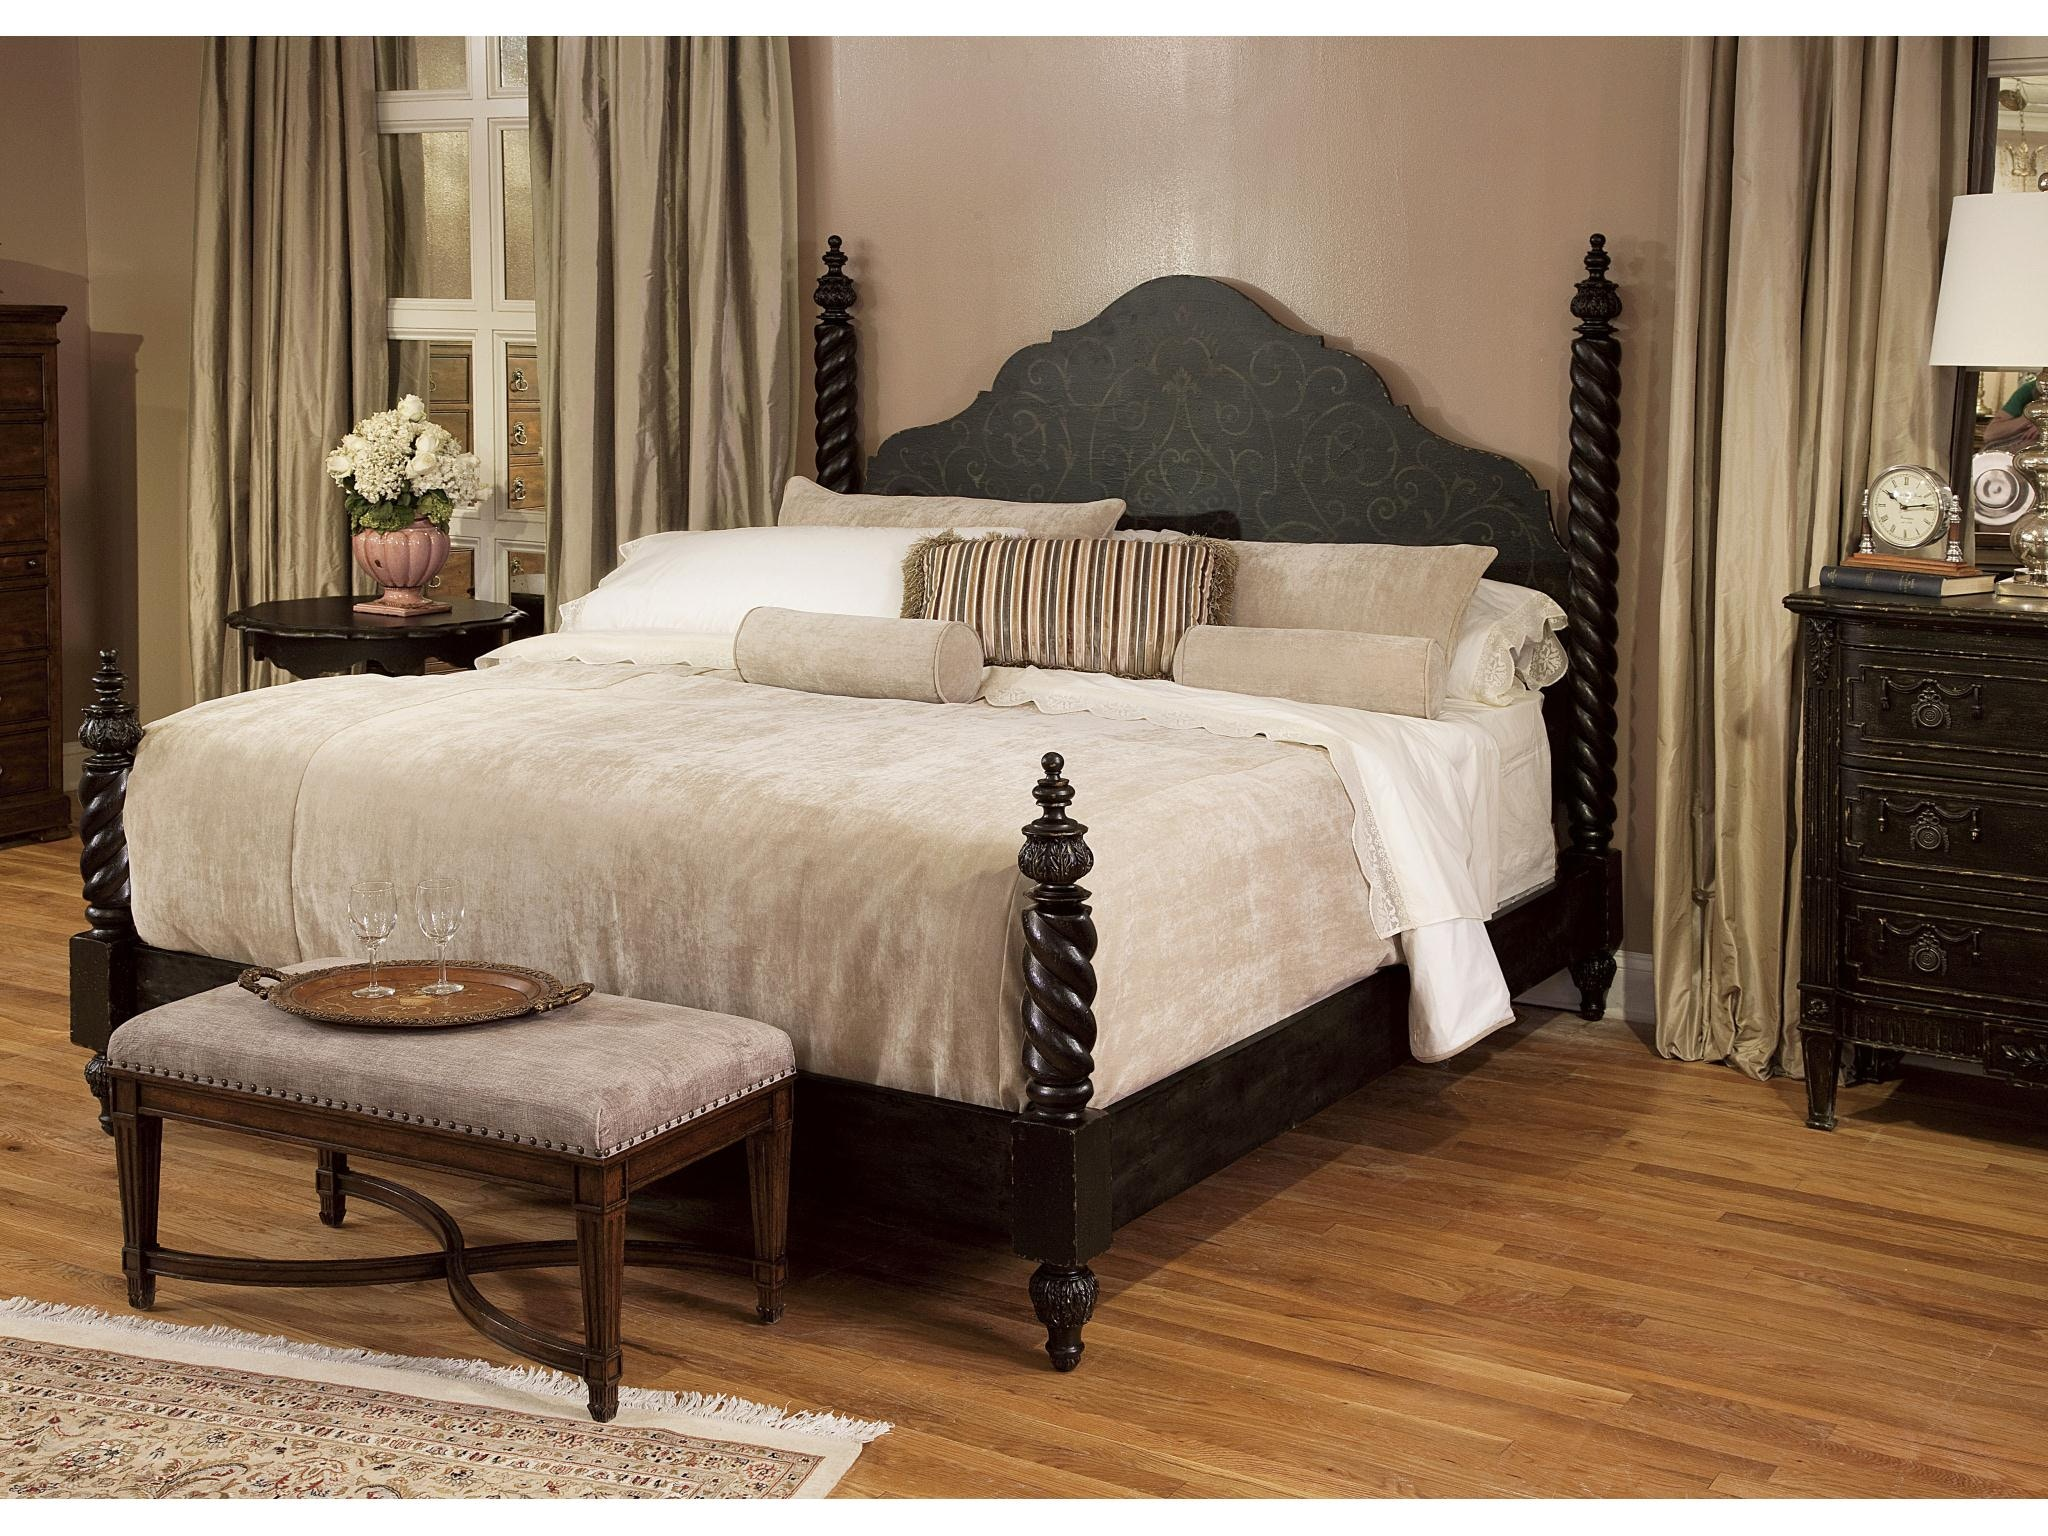 vanderbilt furniture. Fine Furniture Design Bed Bench Vanderbilt 1340-502